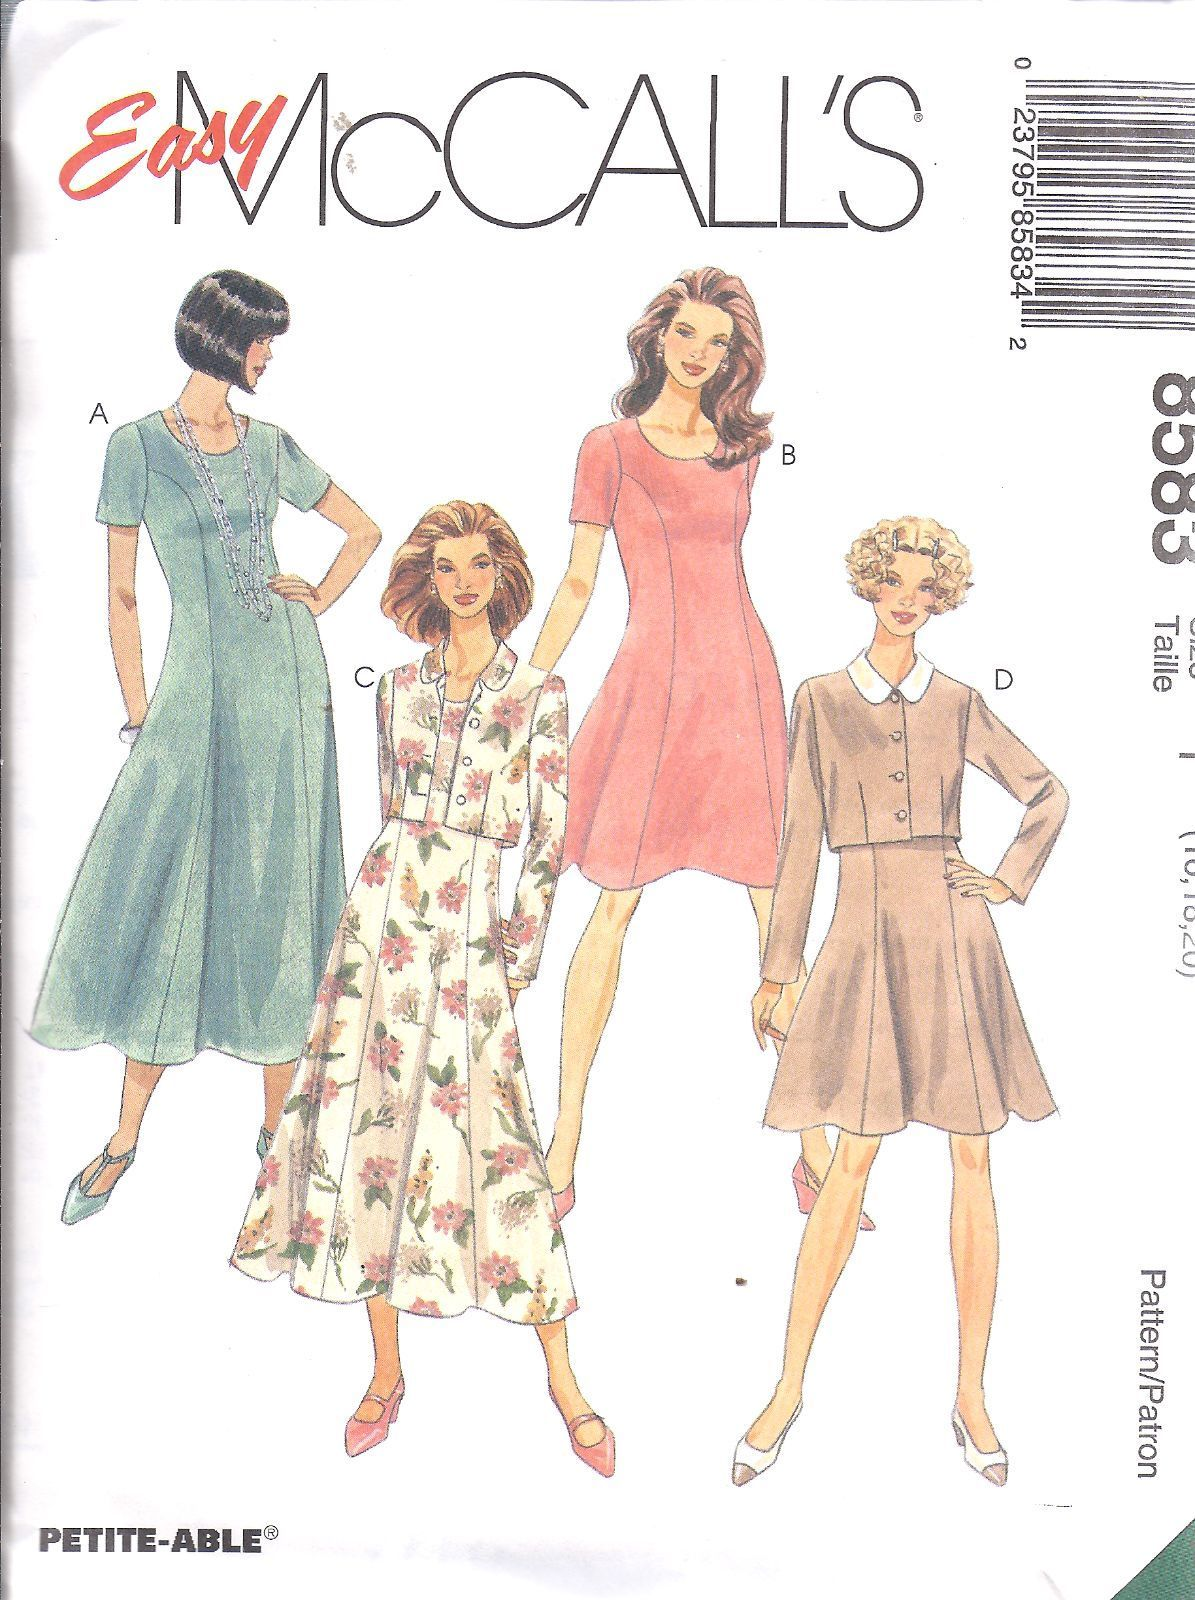 518125c3e26caa $4.89 - 8583 Uncut Mccalls Sewing Pattern Vintage Misses Unlined Jacket  Dress #ebay #Home & Garden